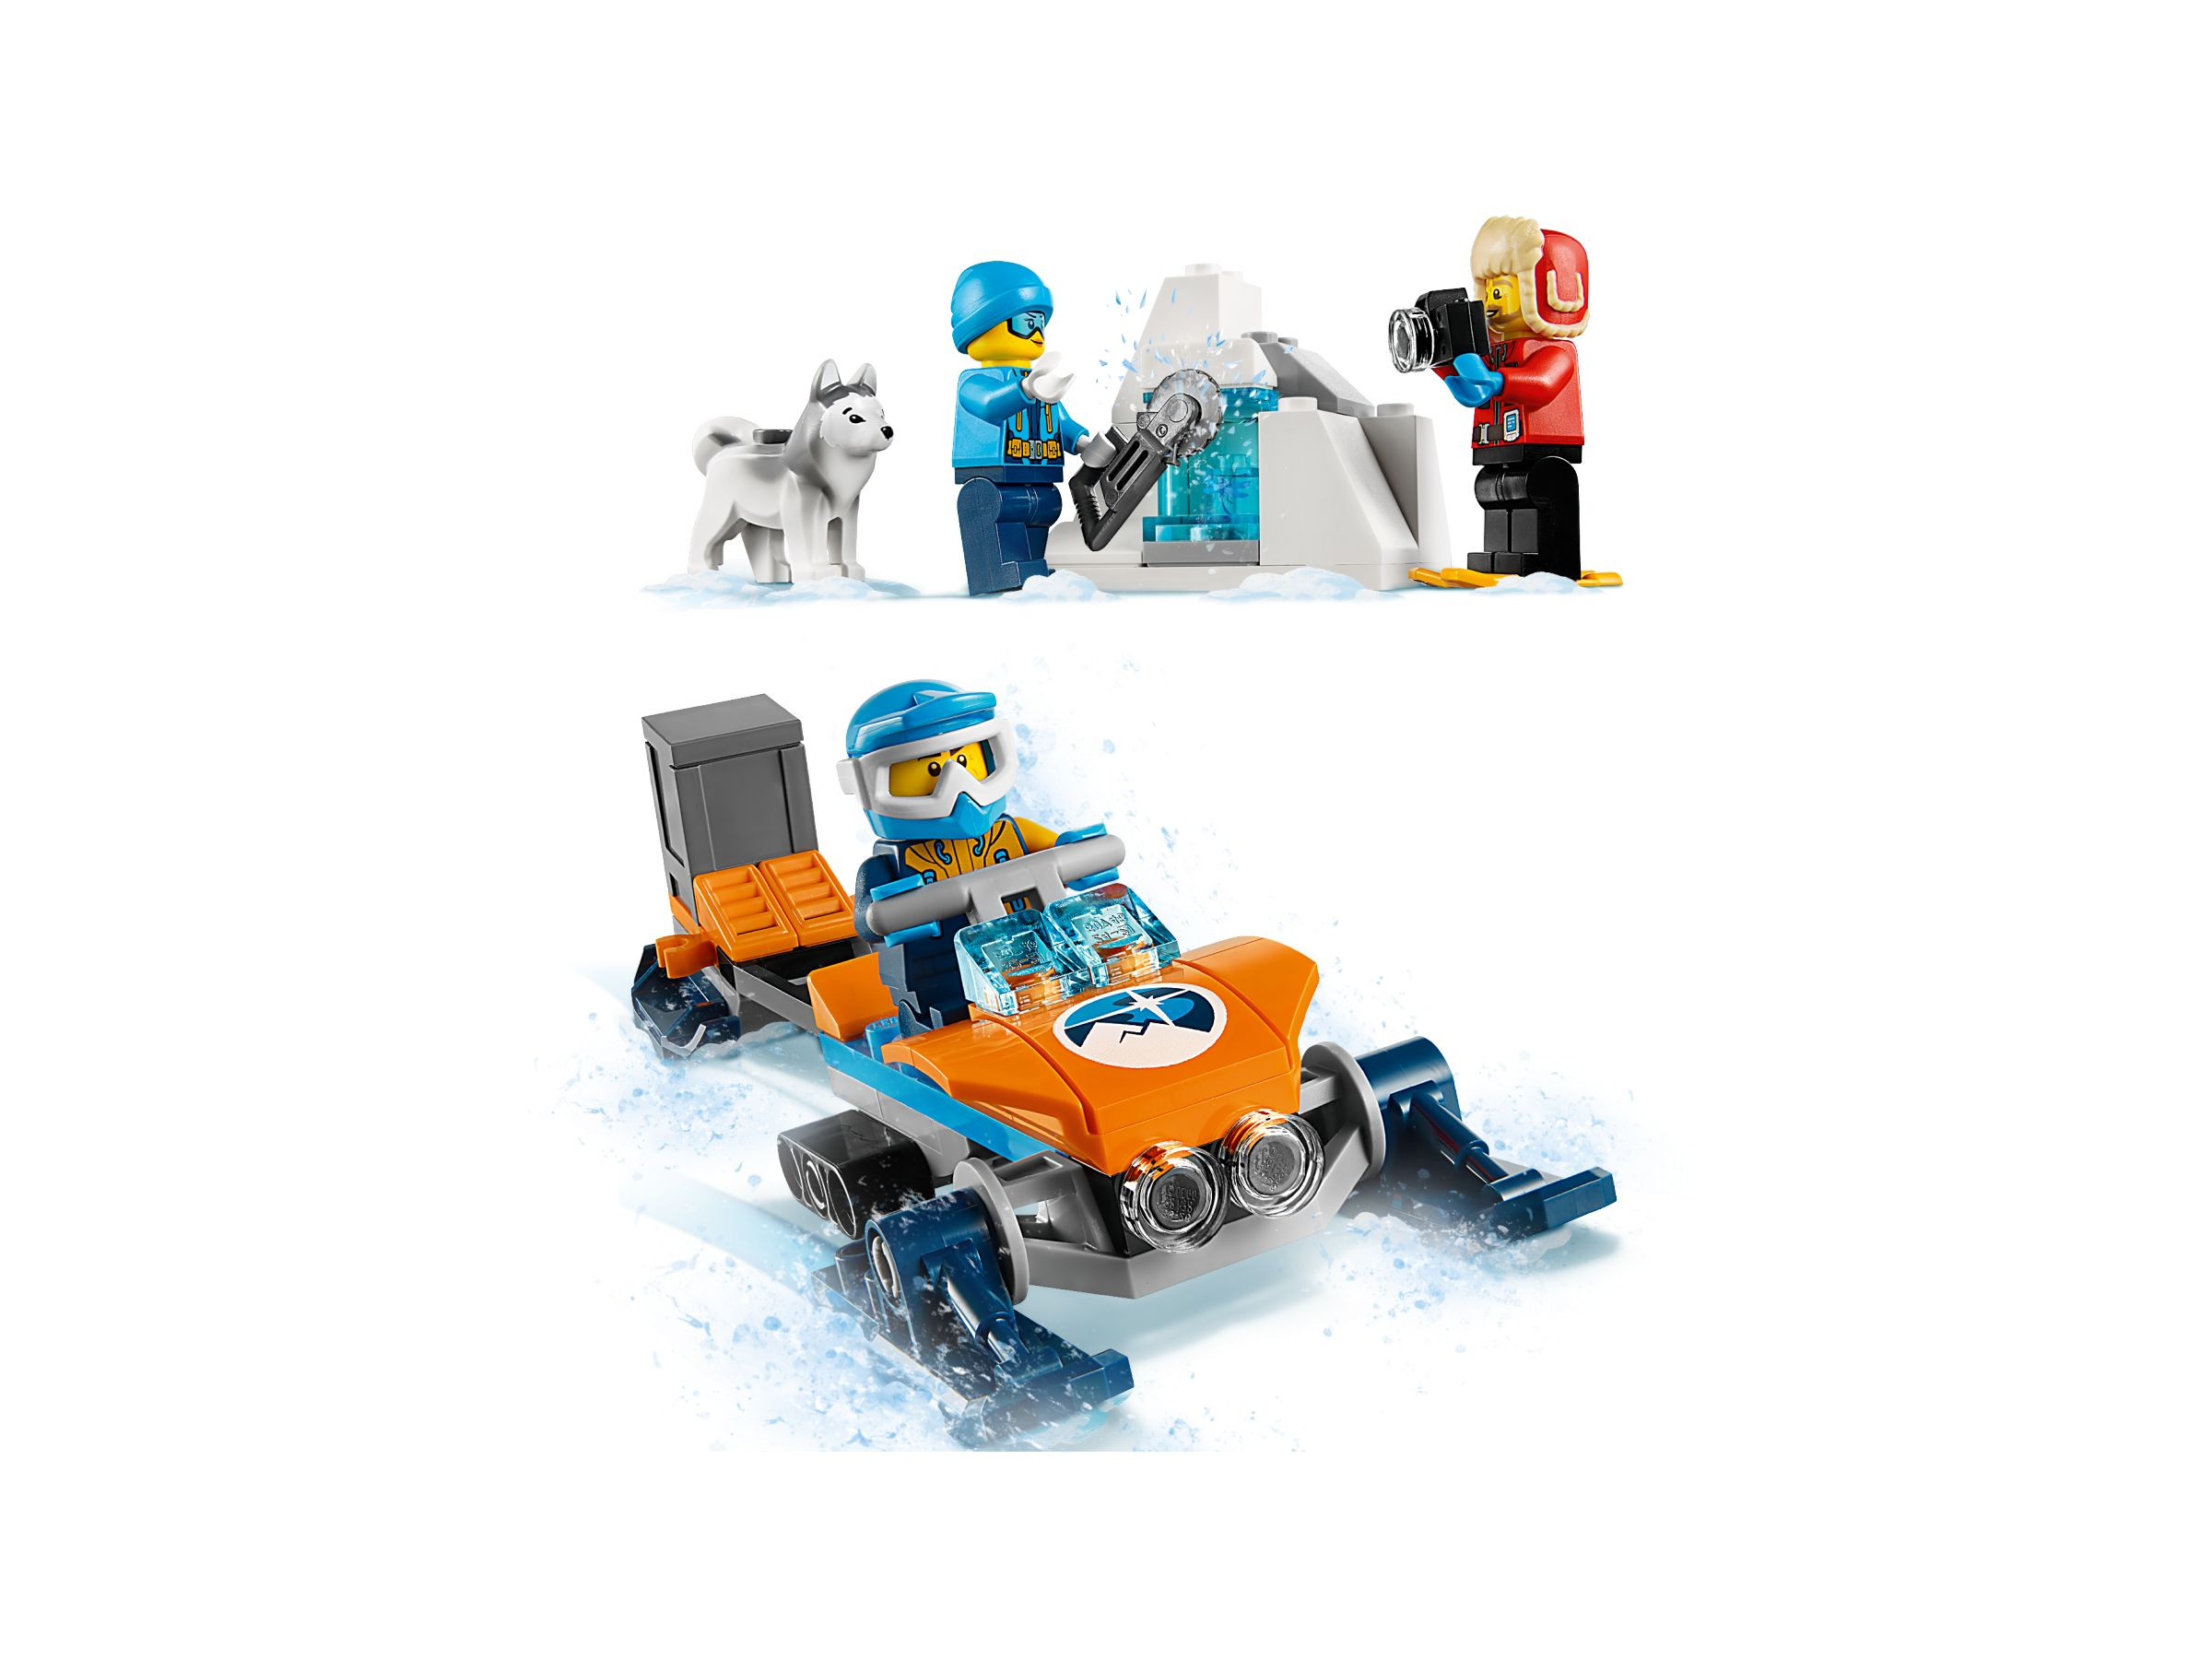 LEGO City 60191 Arktis-Expeditionsteam LEGO_60191_alt3.jpg